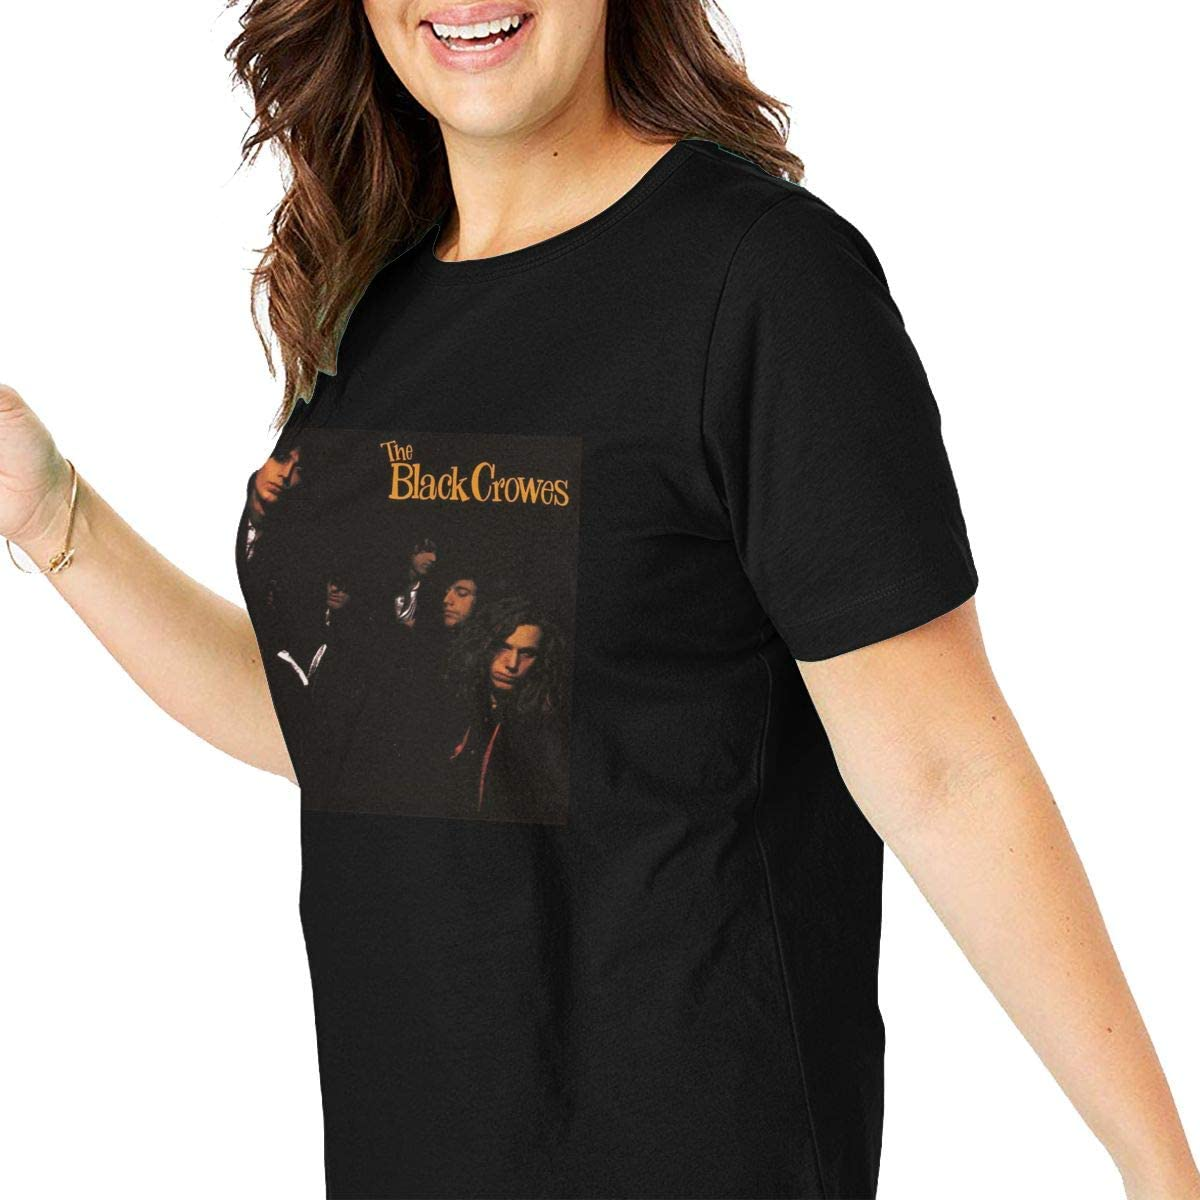 The Black Crowes Shake Your Money Maker Big Size T Shirt Womens Tops Short Sleeved Crewneck Tshirts